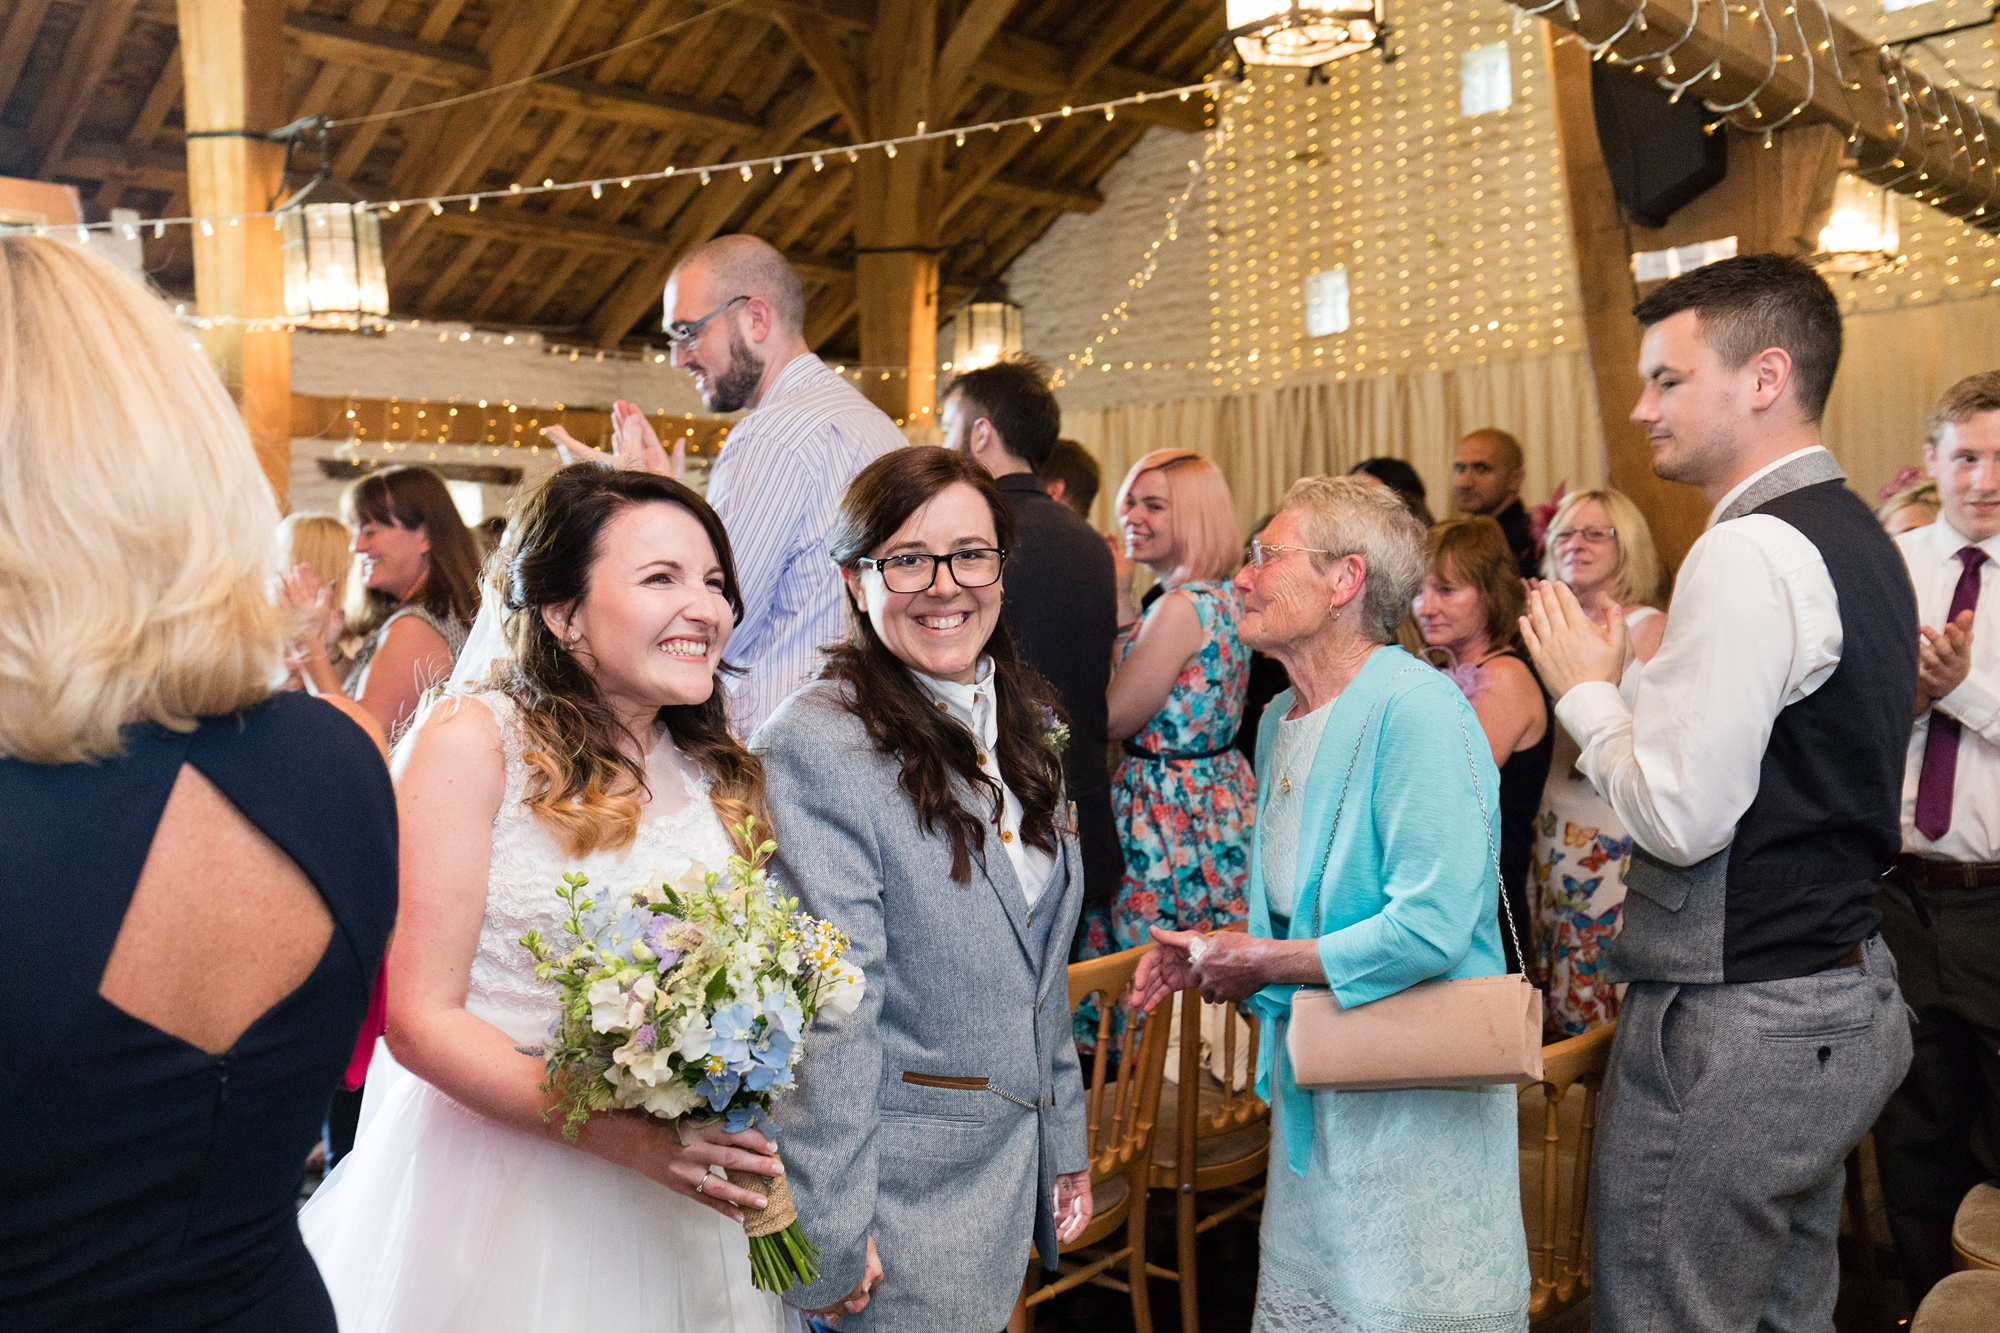 East Riddlesden Hall Wedding Photography brides walking up the aisle together